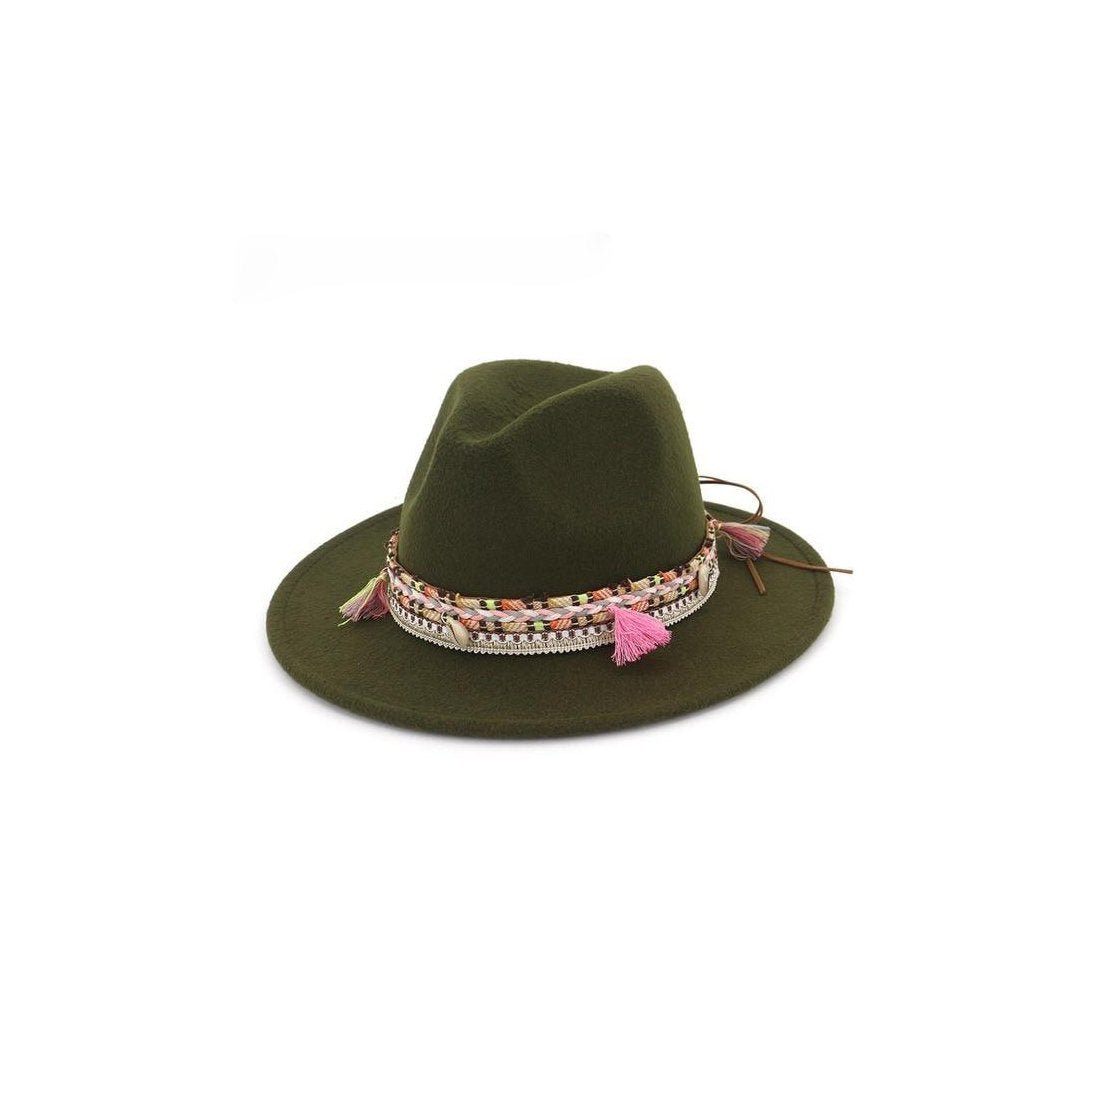 New Womens Fedora Hat Wool Khaki Jazz Hats Female National Casual Large Brim Vintage Autumn Classic Felt Hat And Cap